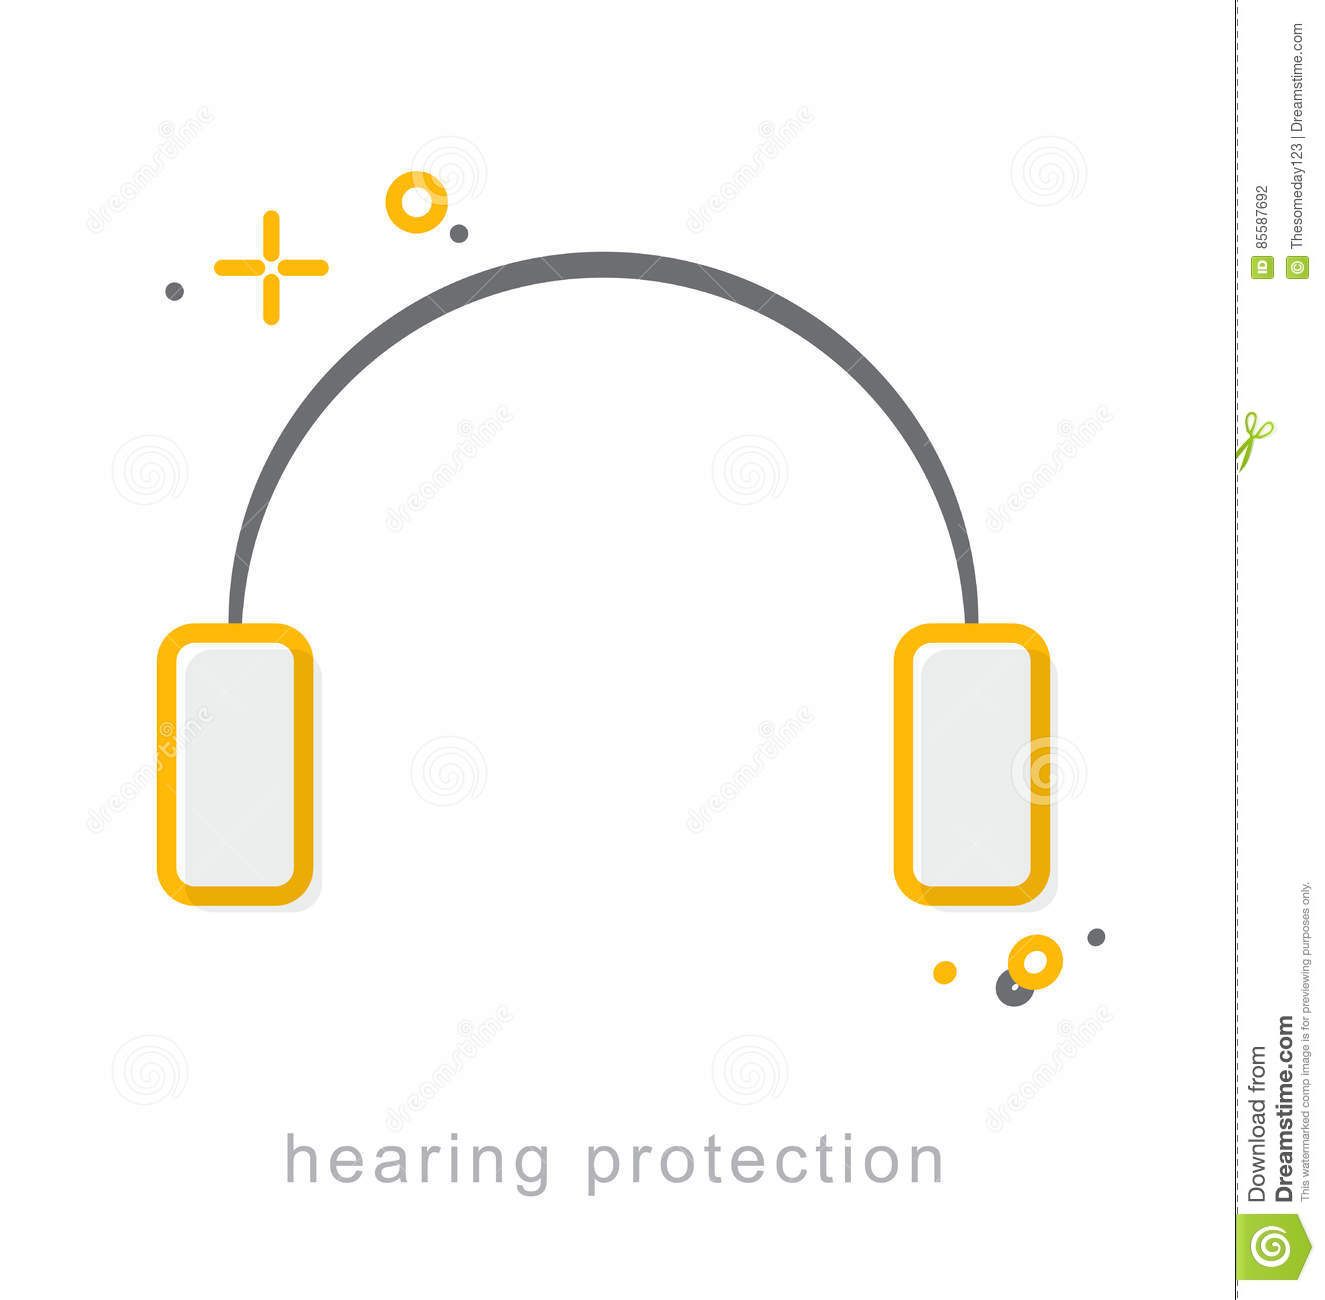 Thin Line Icons Hearing Protection Stock Vector Illustration Of